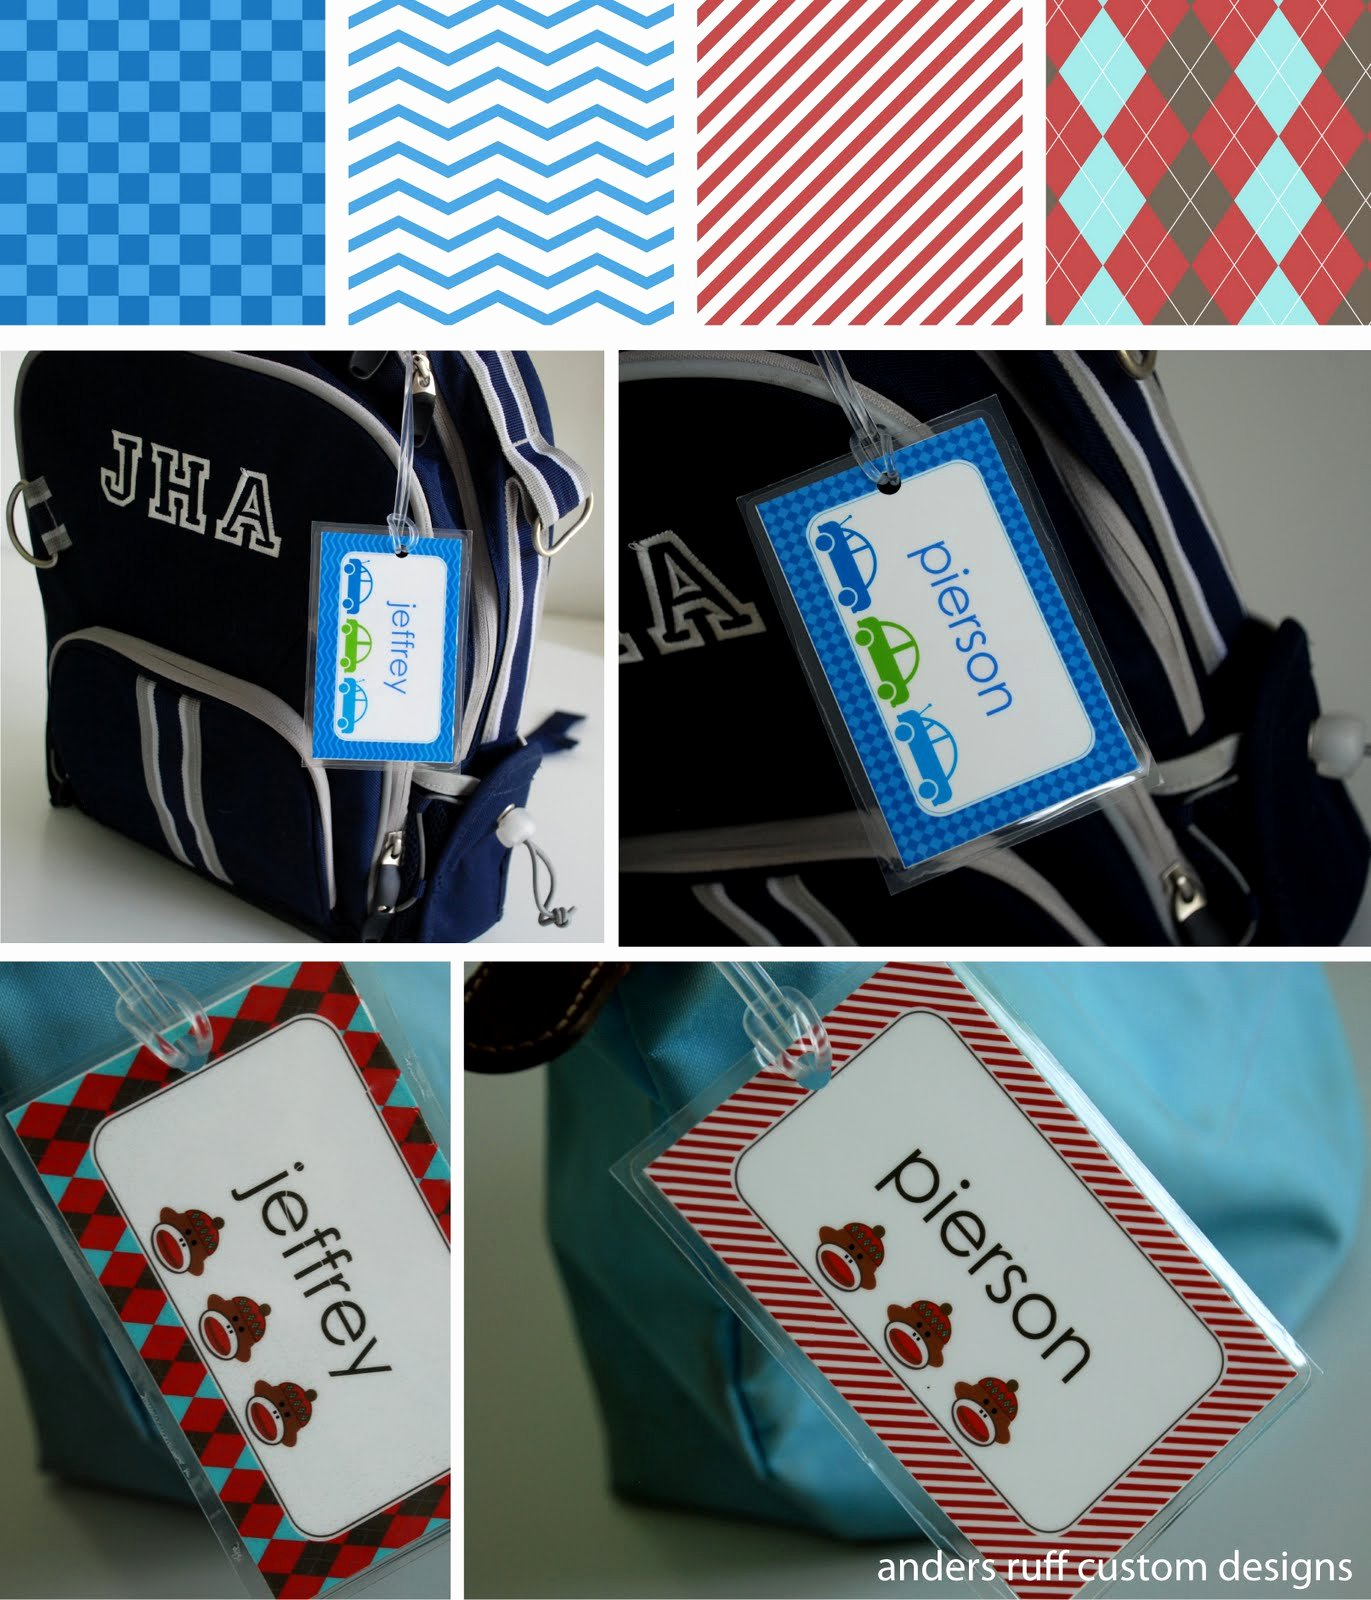 Diy Luggage Tags Template Awesome Fabulous Features by anders Ruff Custom Designs Free